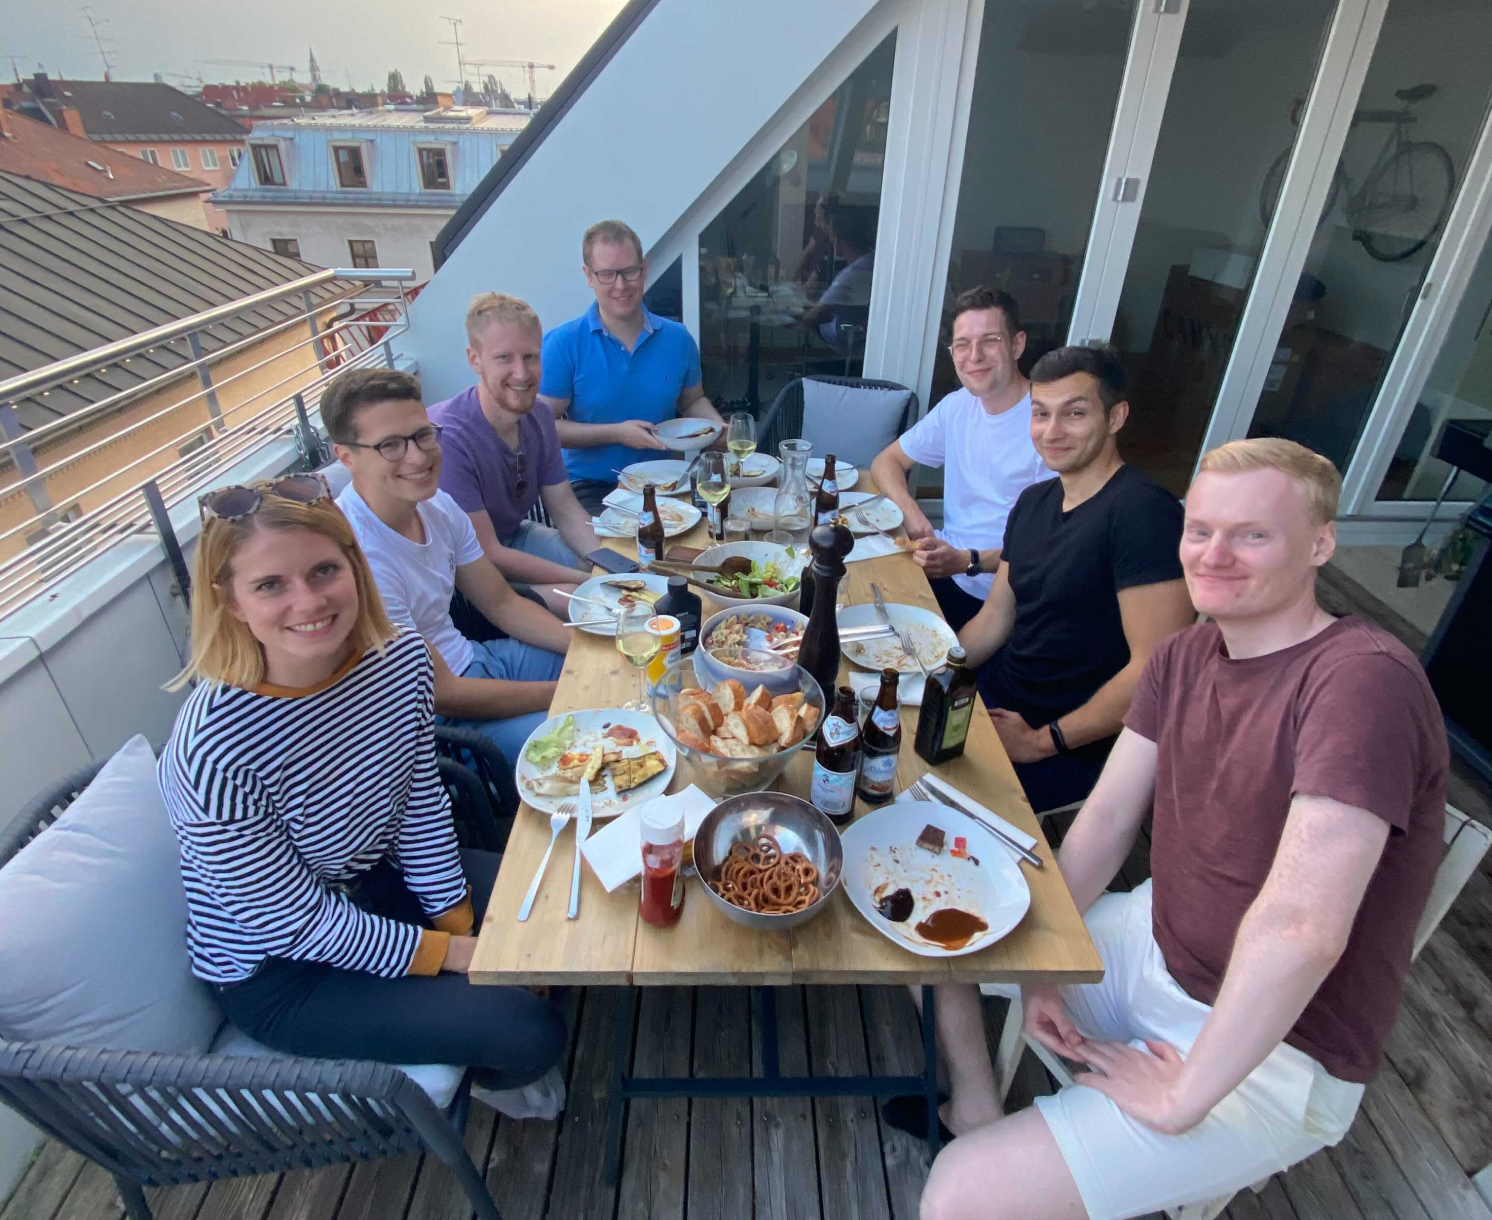 The product team dinner